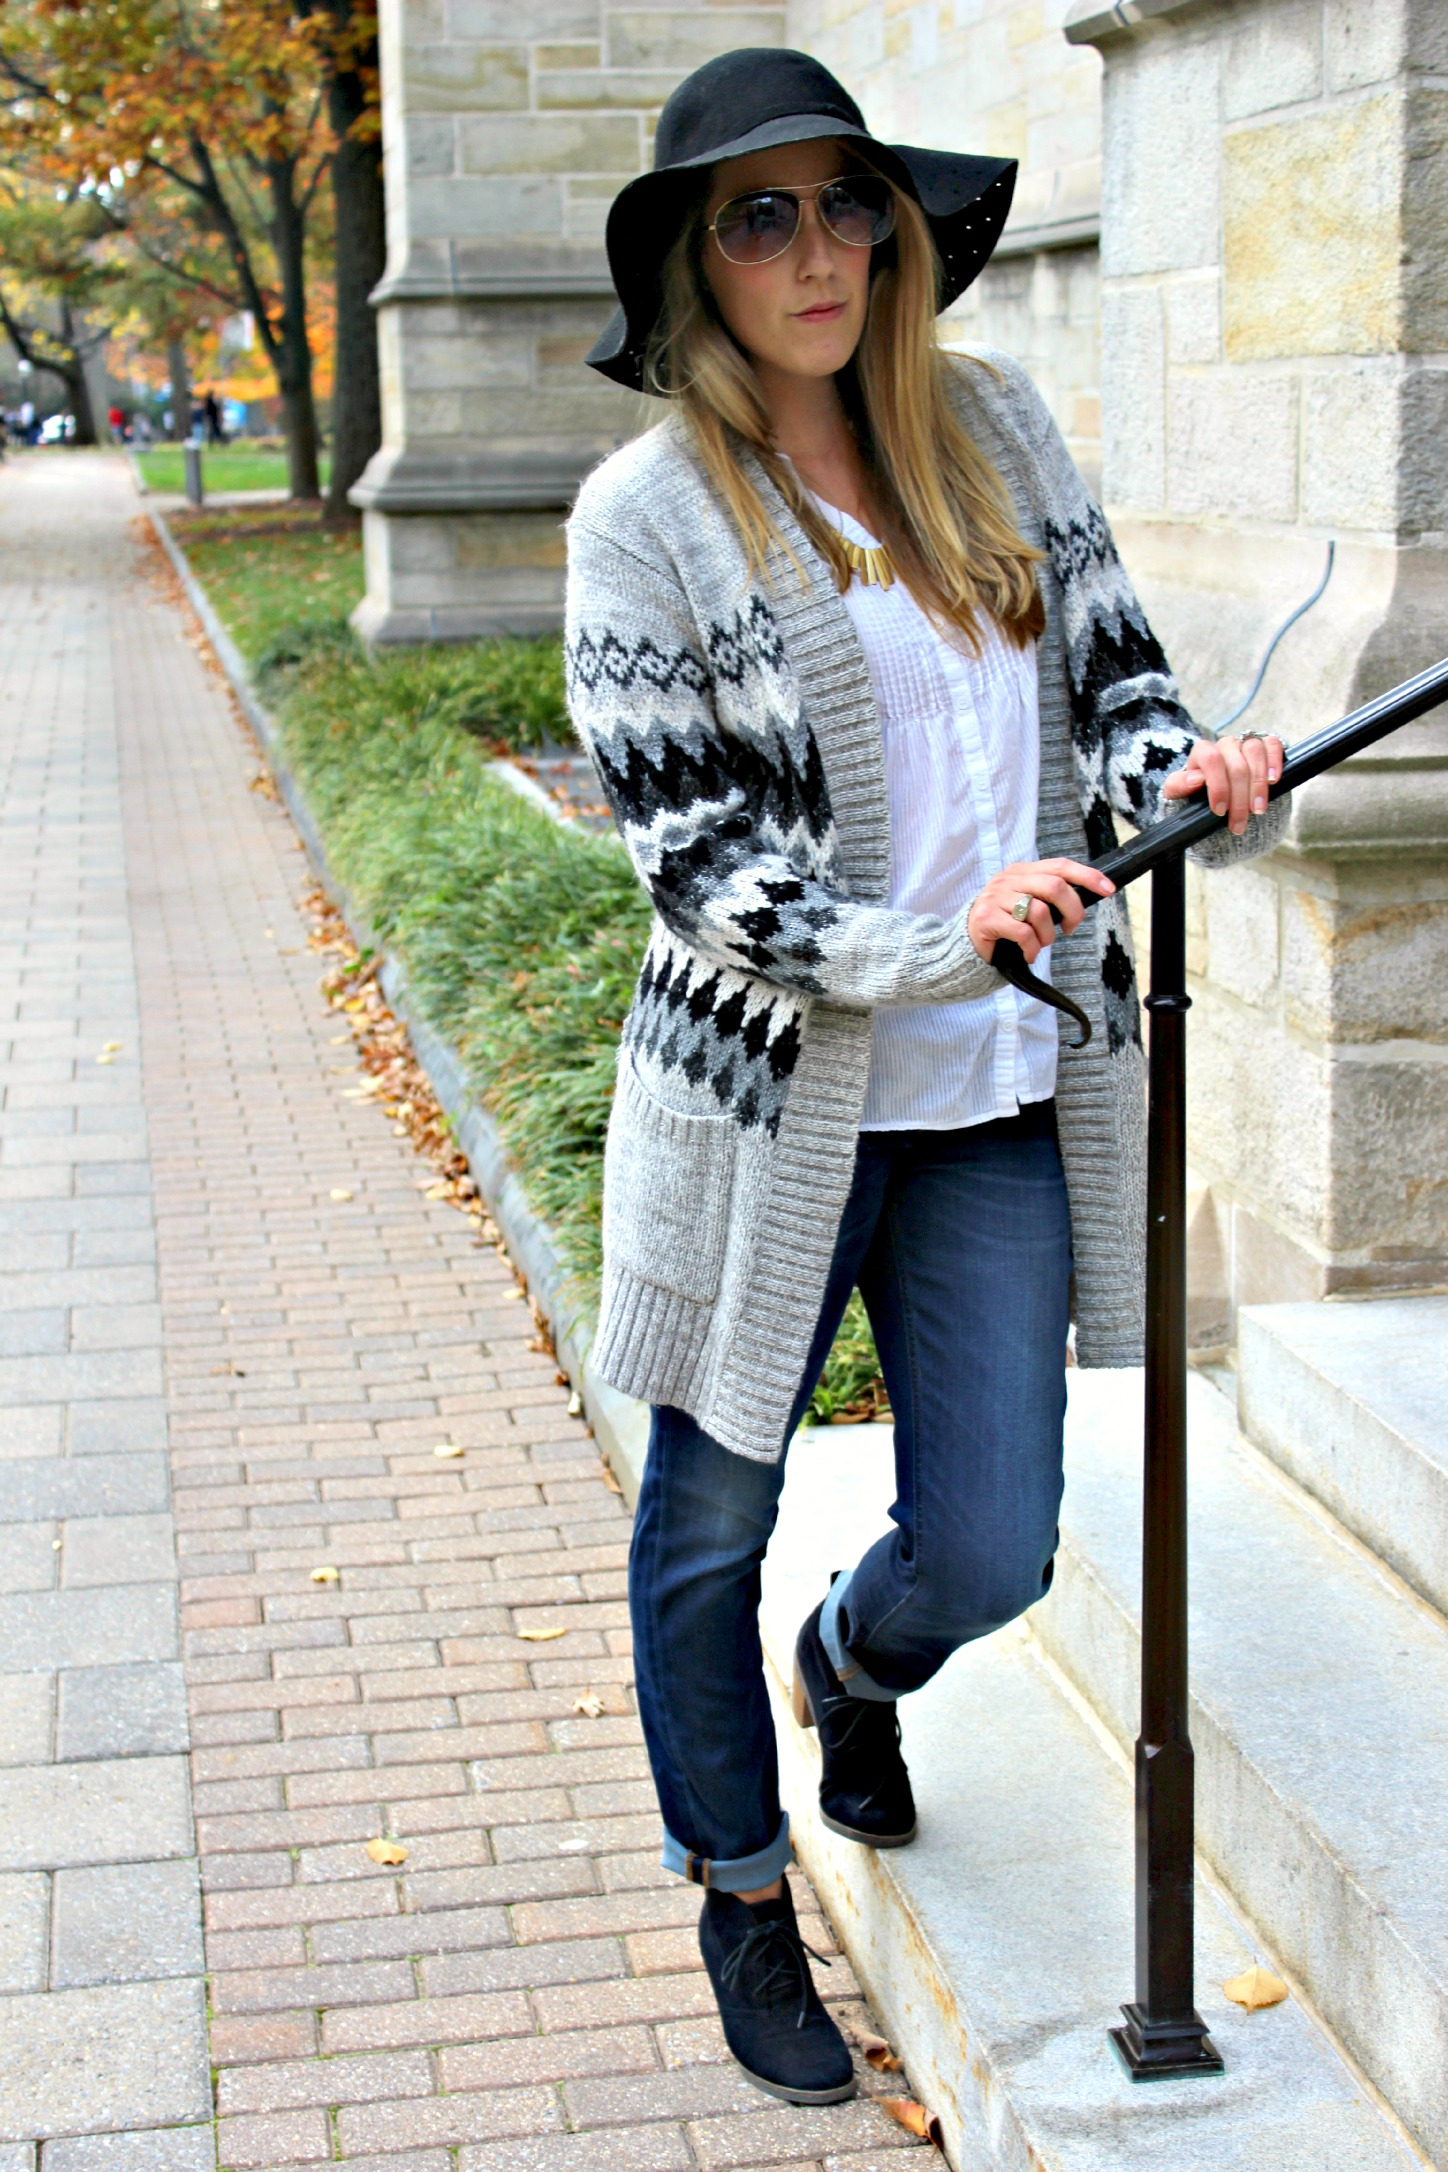 The Long Cardigan, A Fall Essential